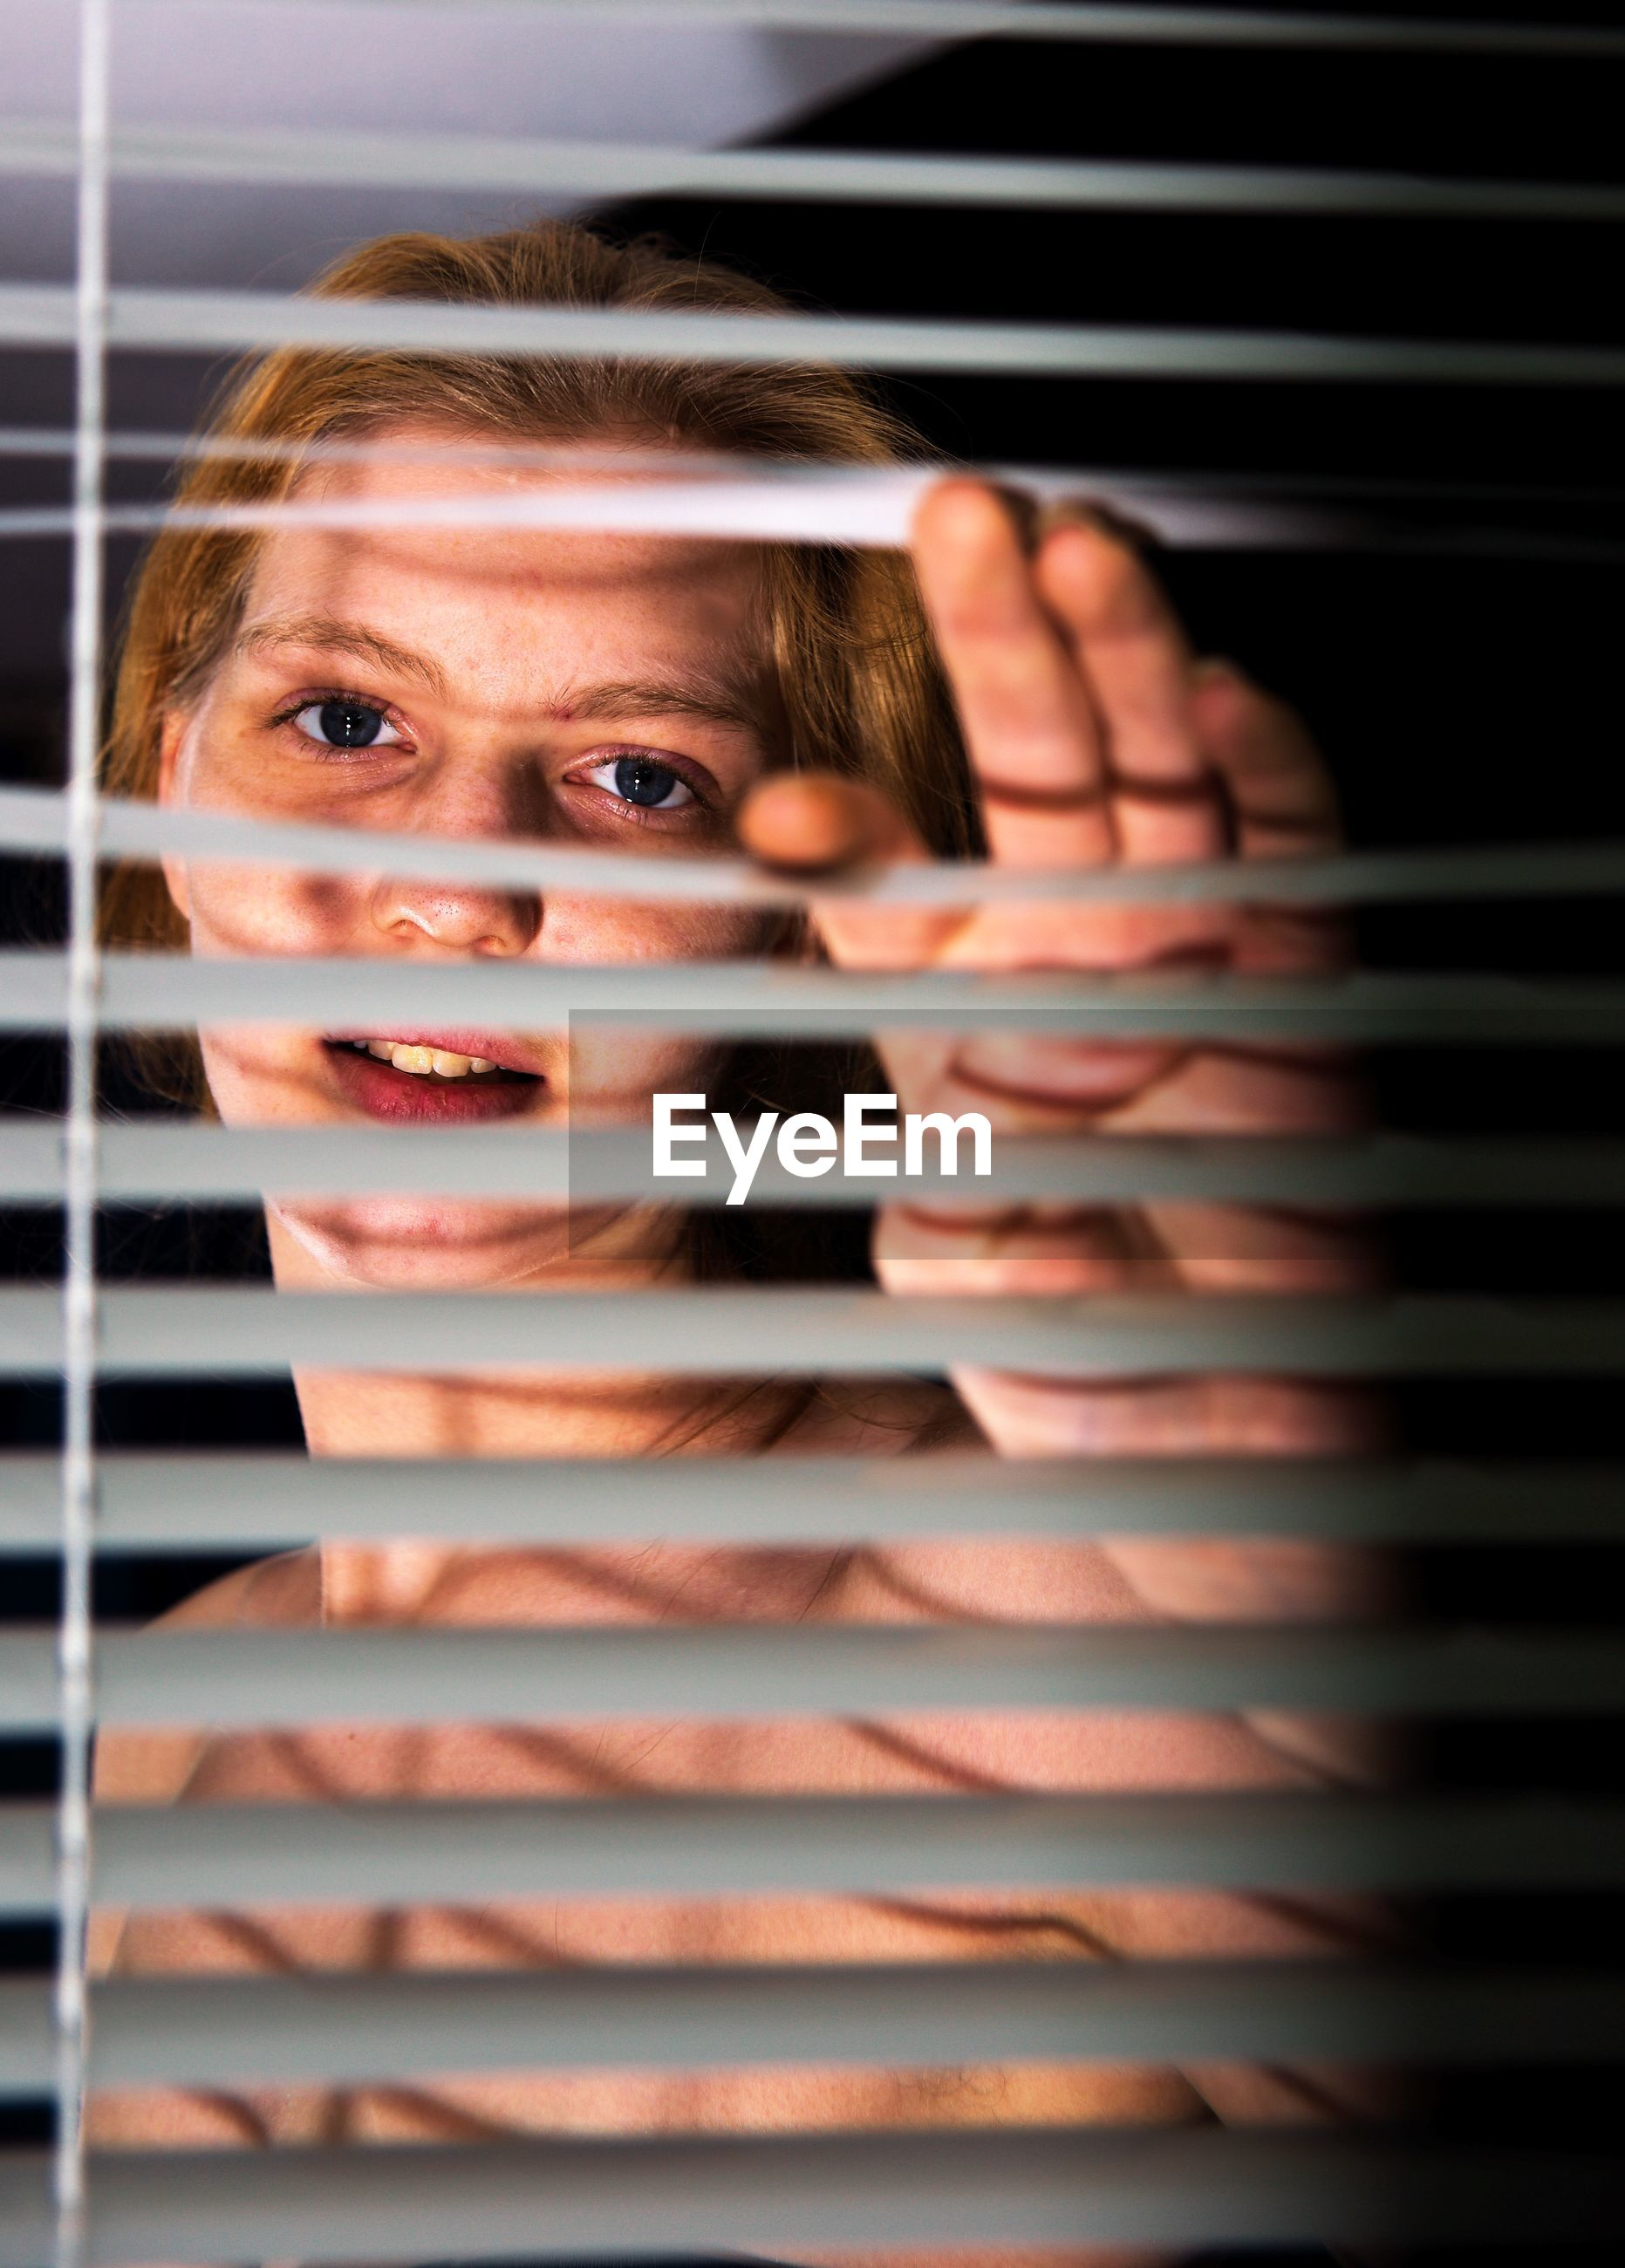 Portrait of young woman seen through blinds